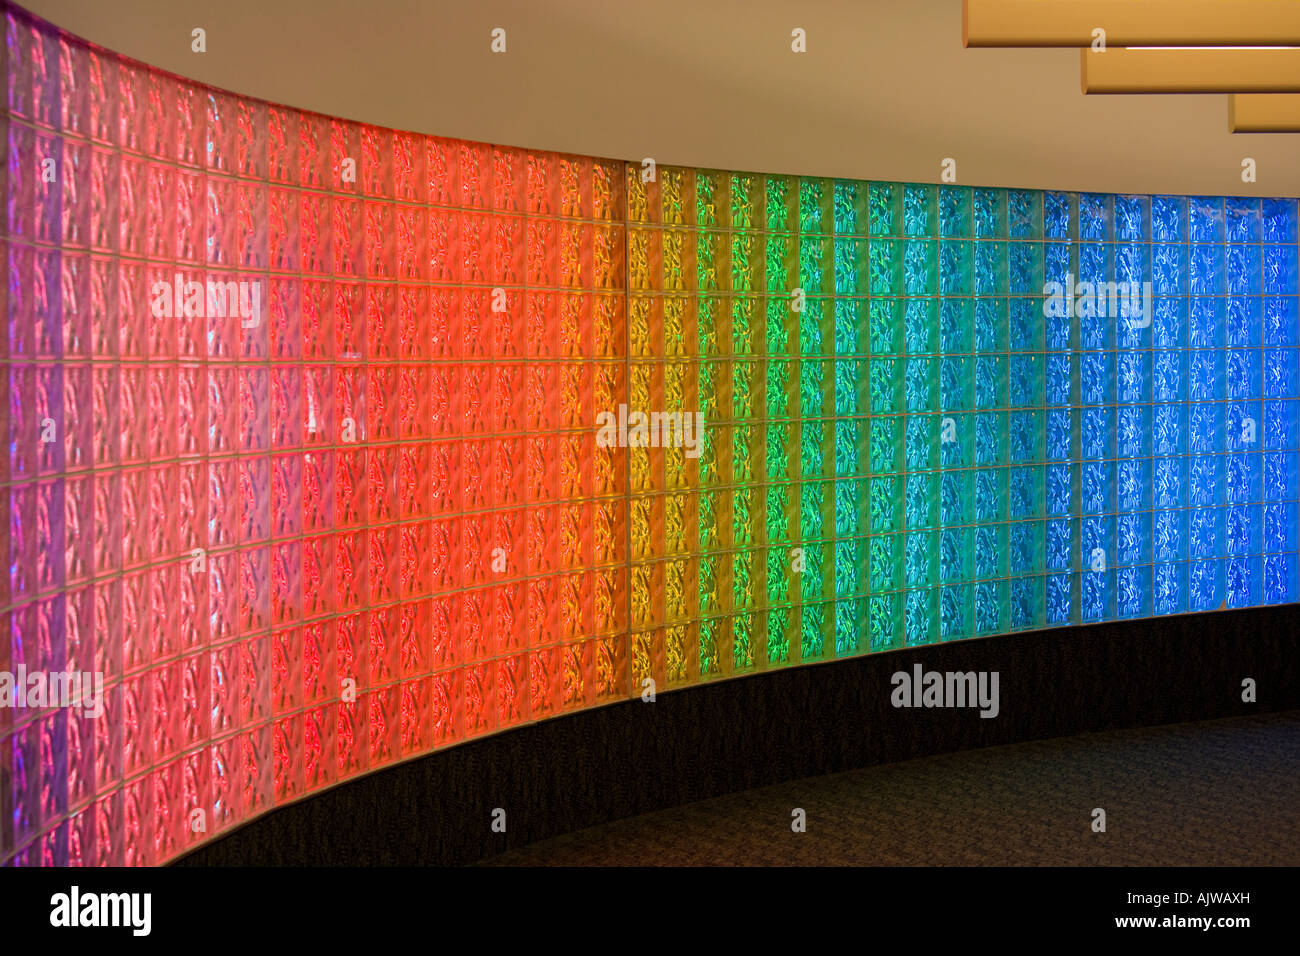 Curved Glass Block Brick Wall With Colored Fluorescent